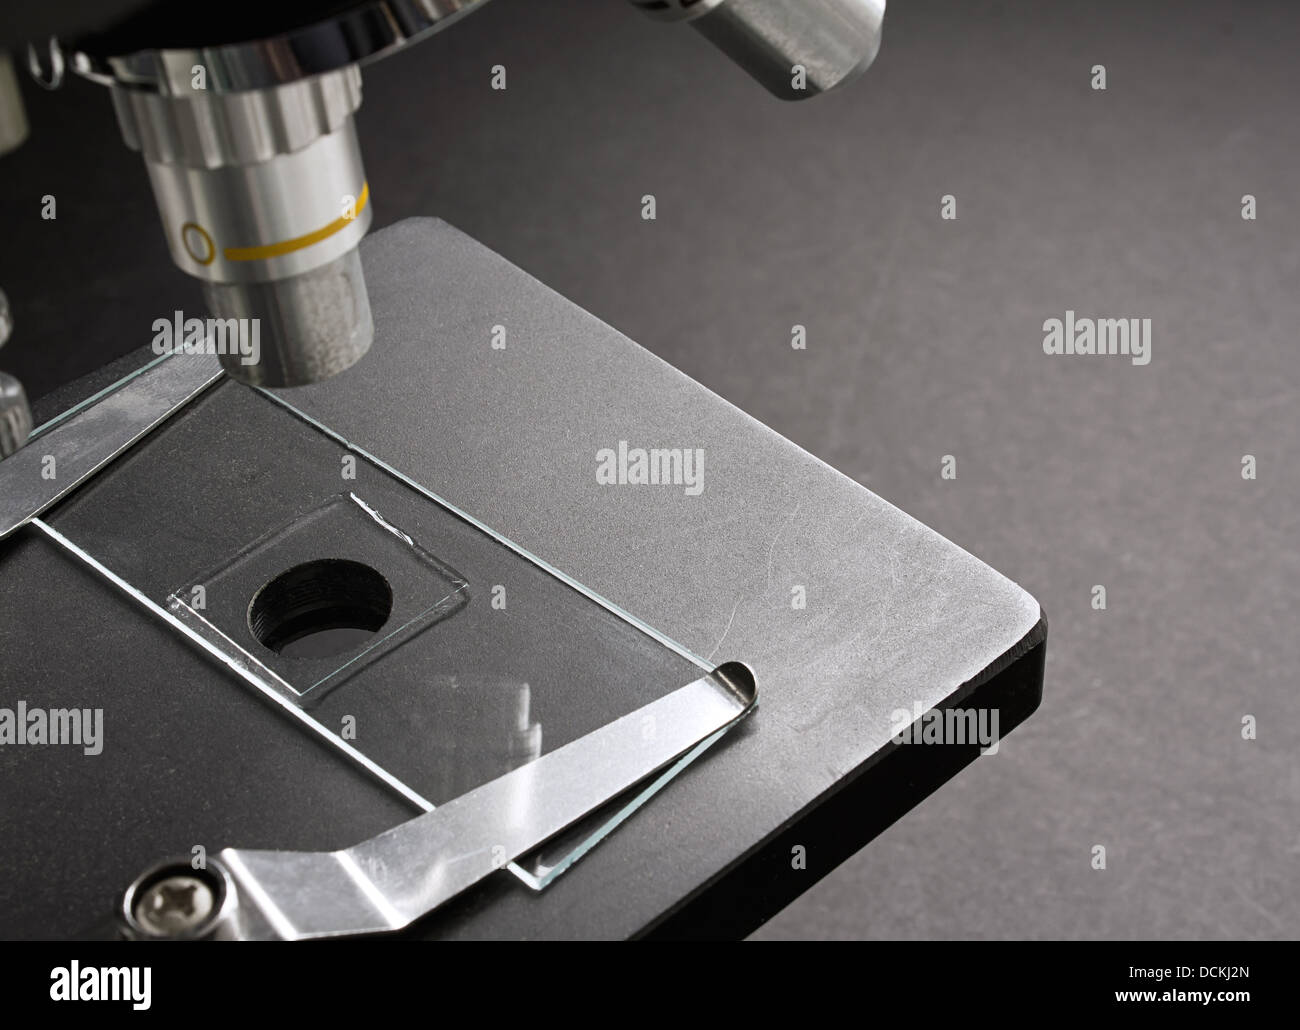 microscope with mounted glass slide on for microscopic inspection of cells - Stock Image